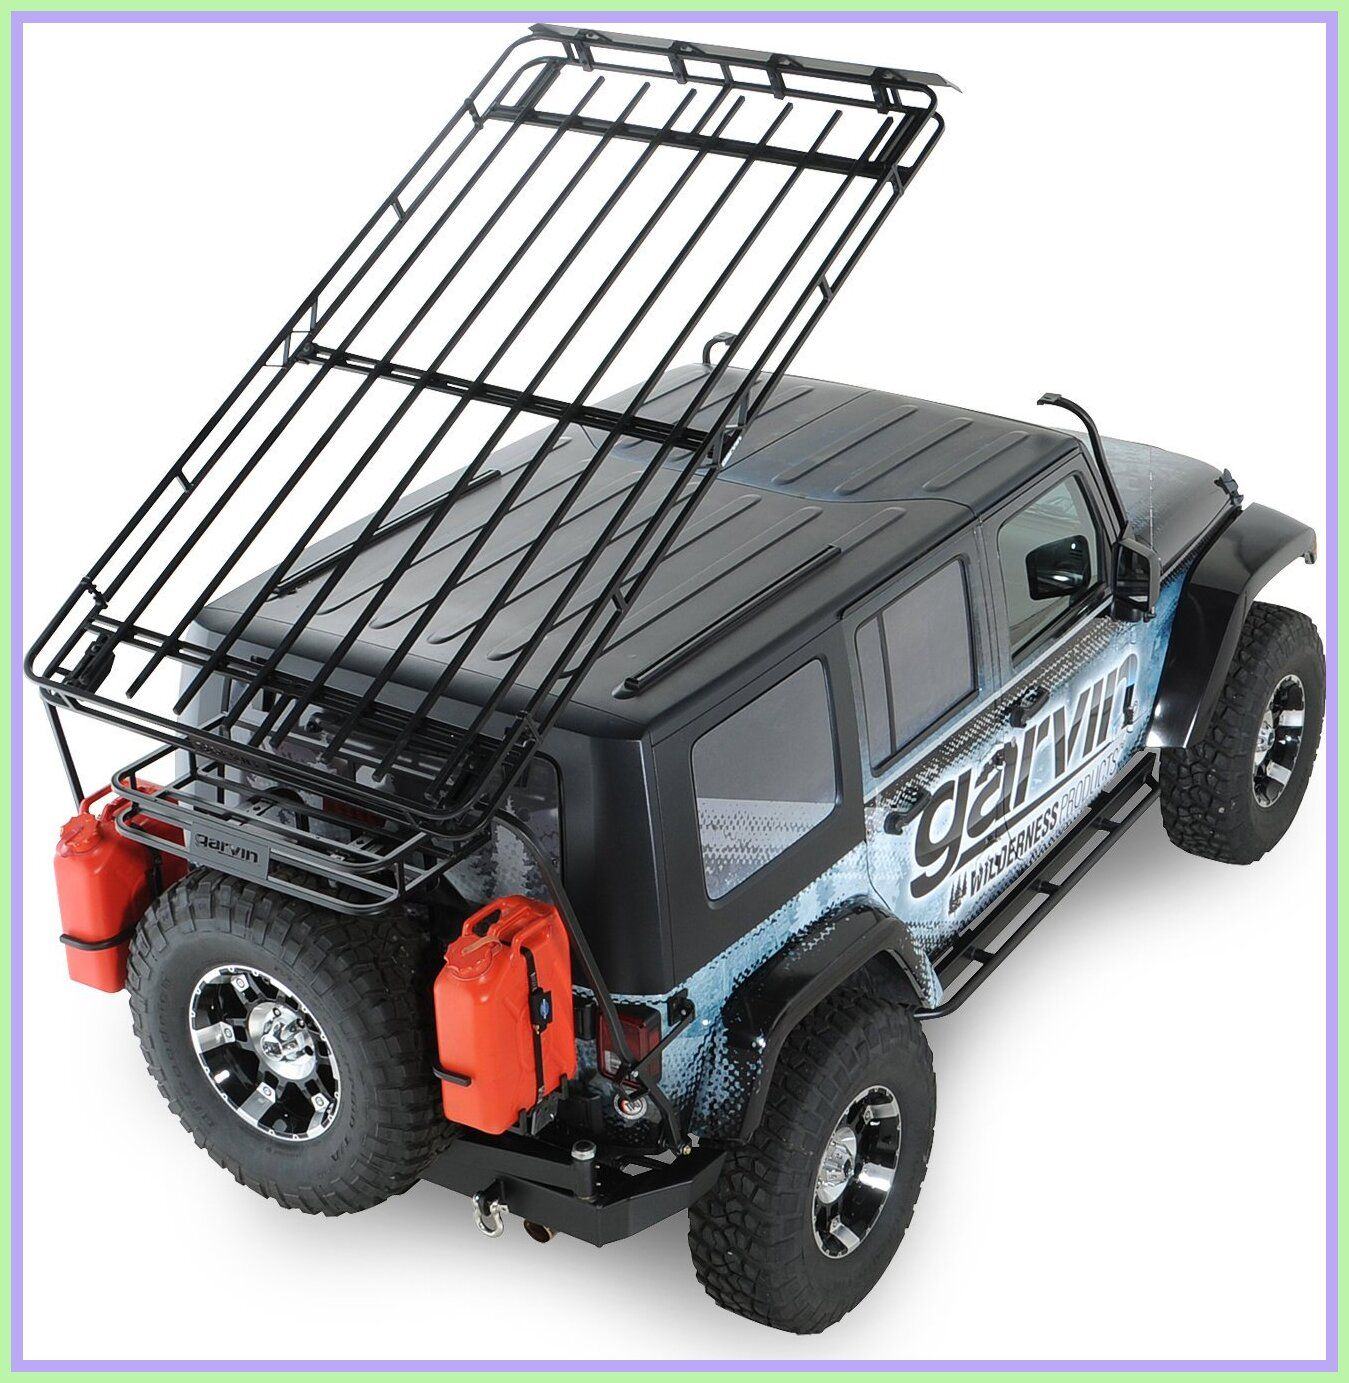 45 Reference Of Kayak Rack Jeep Wrangler Unlimited In 2020 Jeep